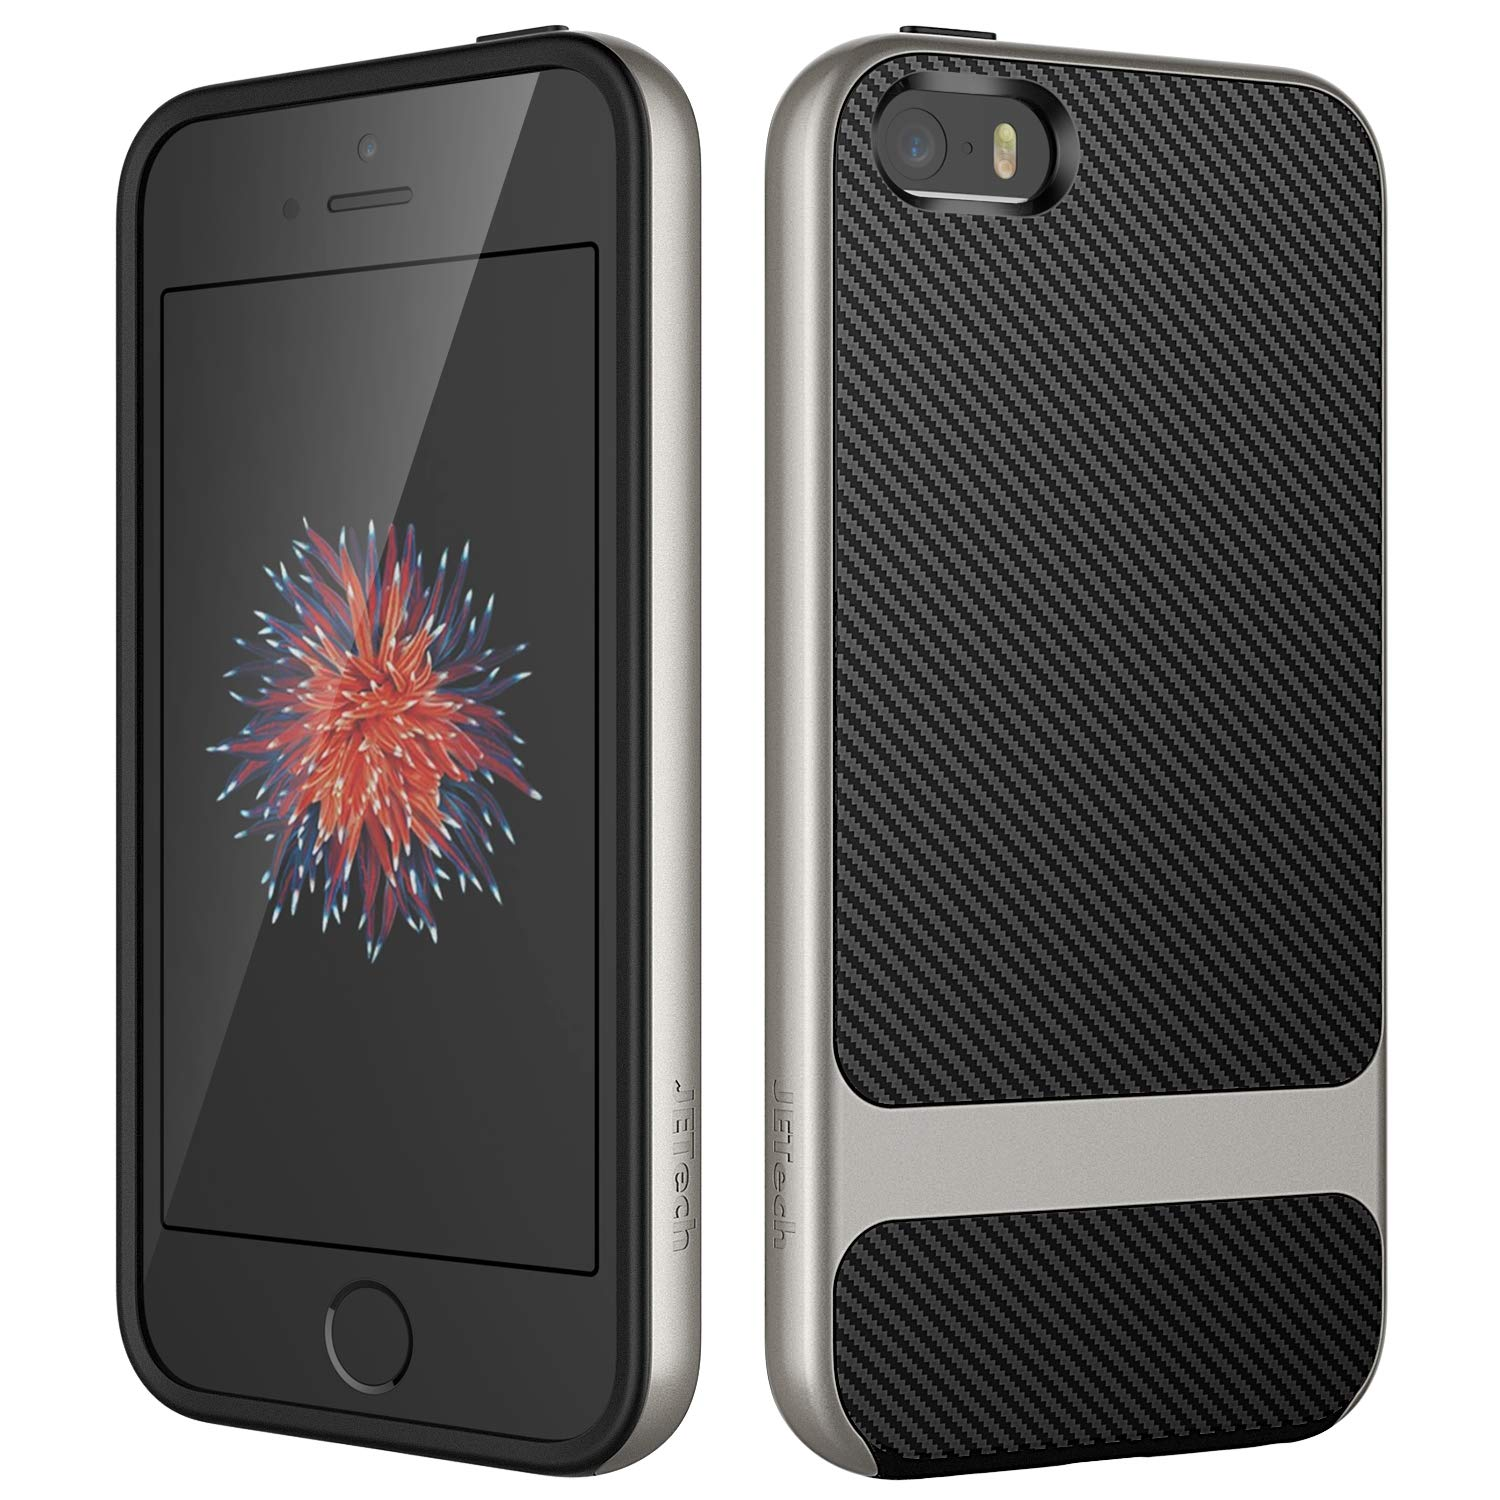 JETech Case for Apple iPhone SE 5s 5, Slim Protective Cover with Shock-Absorption, Carbon Fiber Design (Grey)